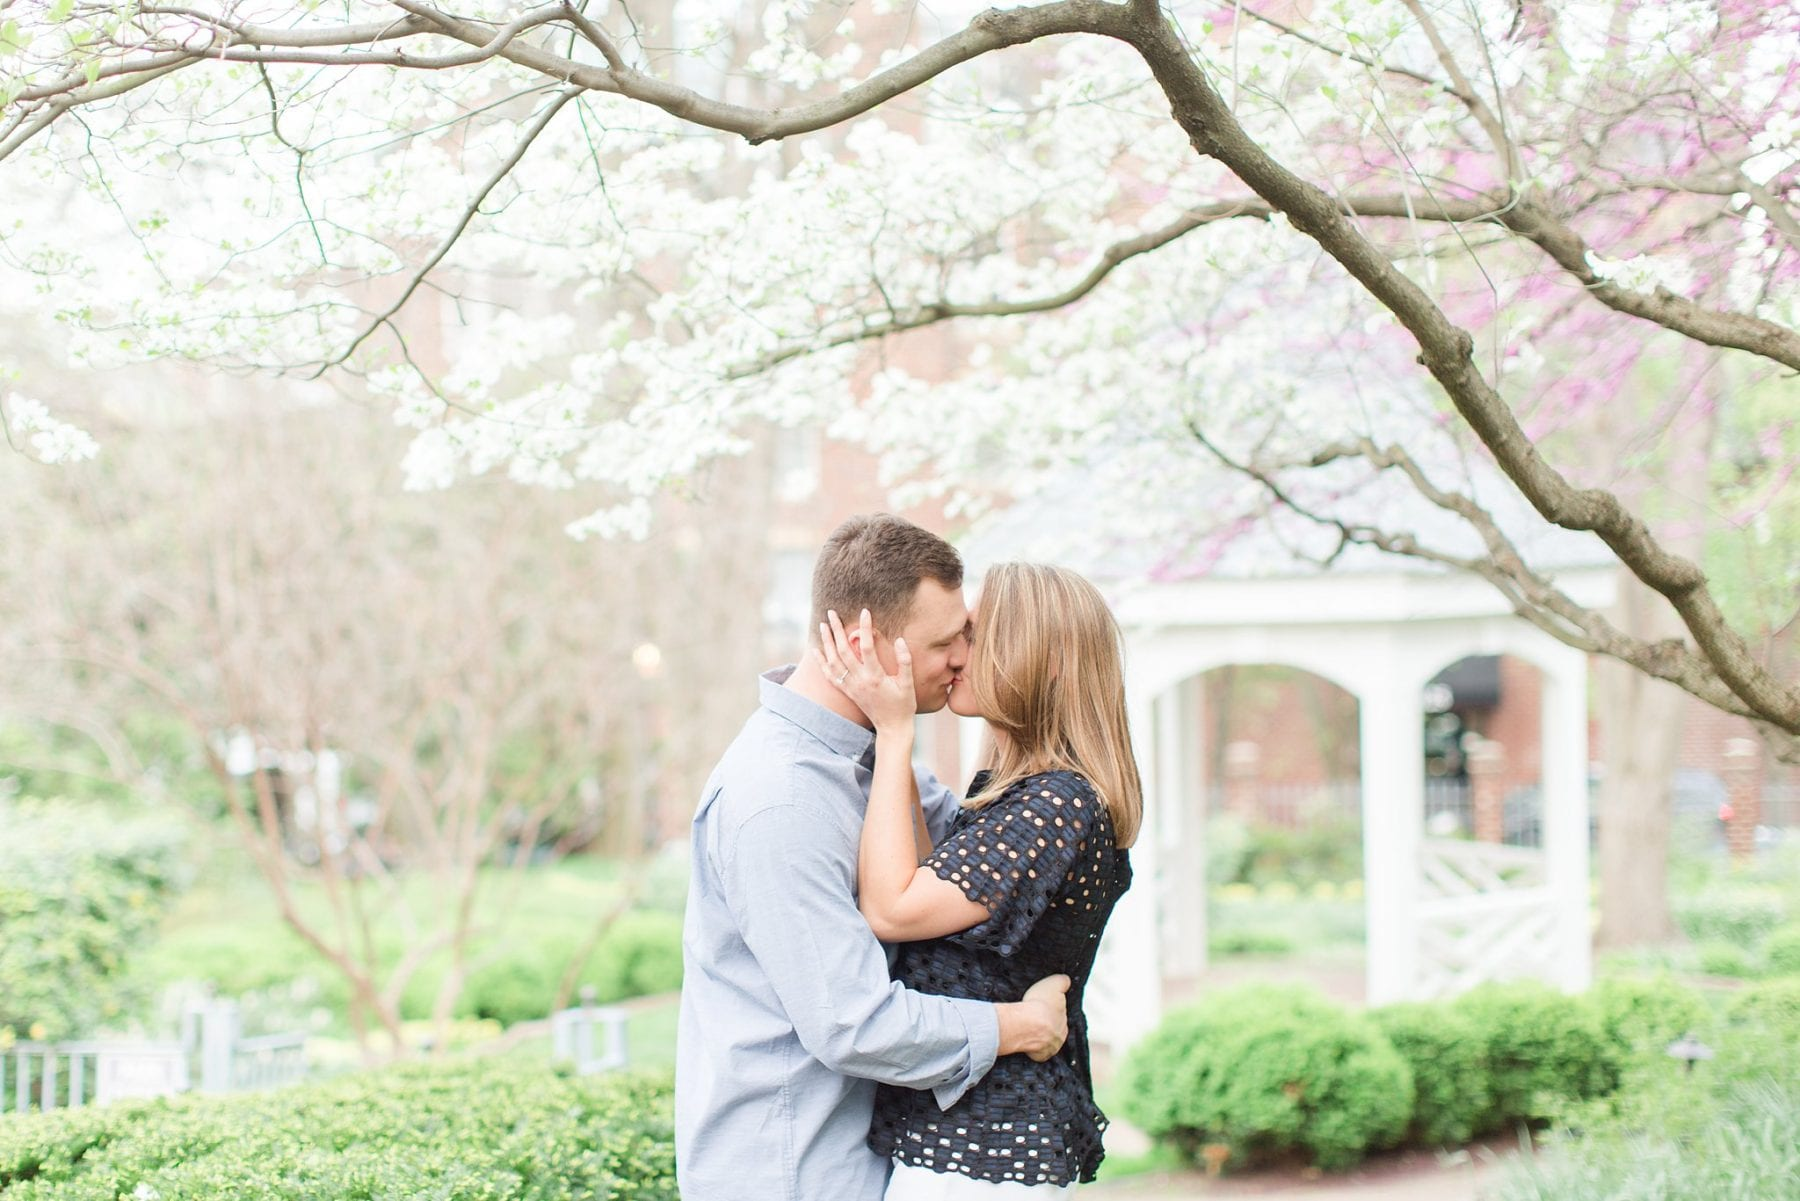 Springtime Old Town Alexandria Engagement Session Matt & Maxie Megan Kelsey Photography-250.jpg